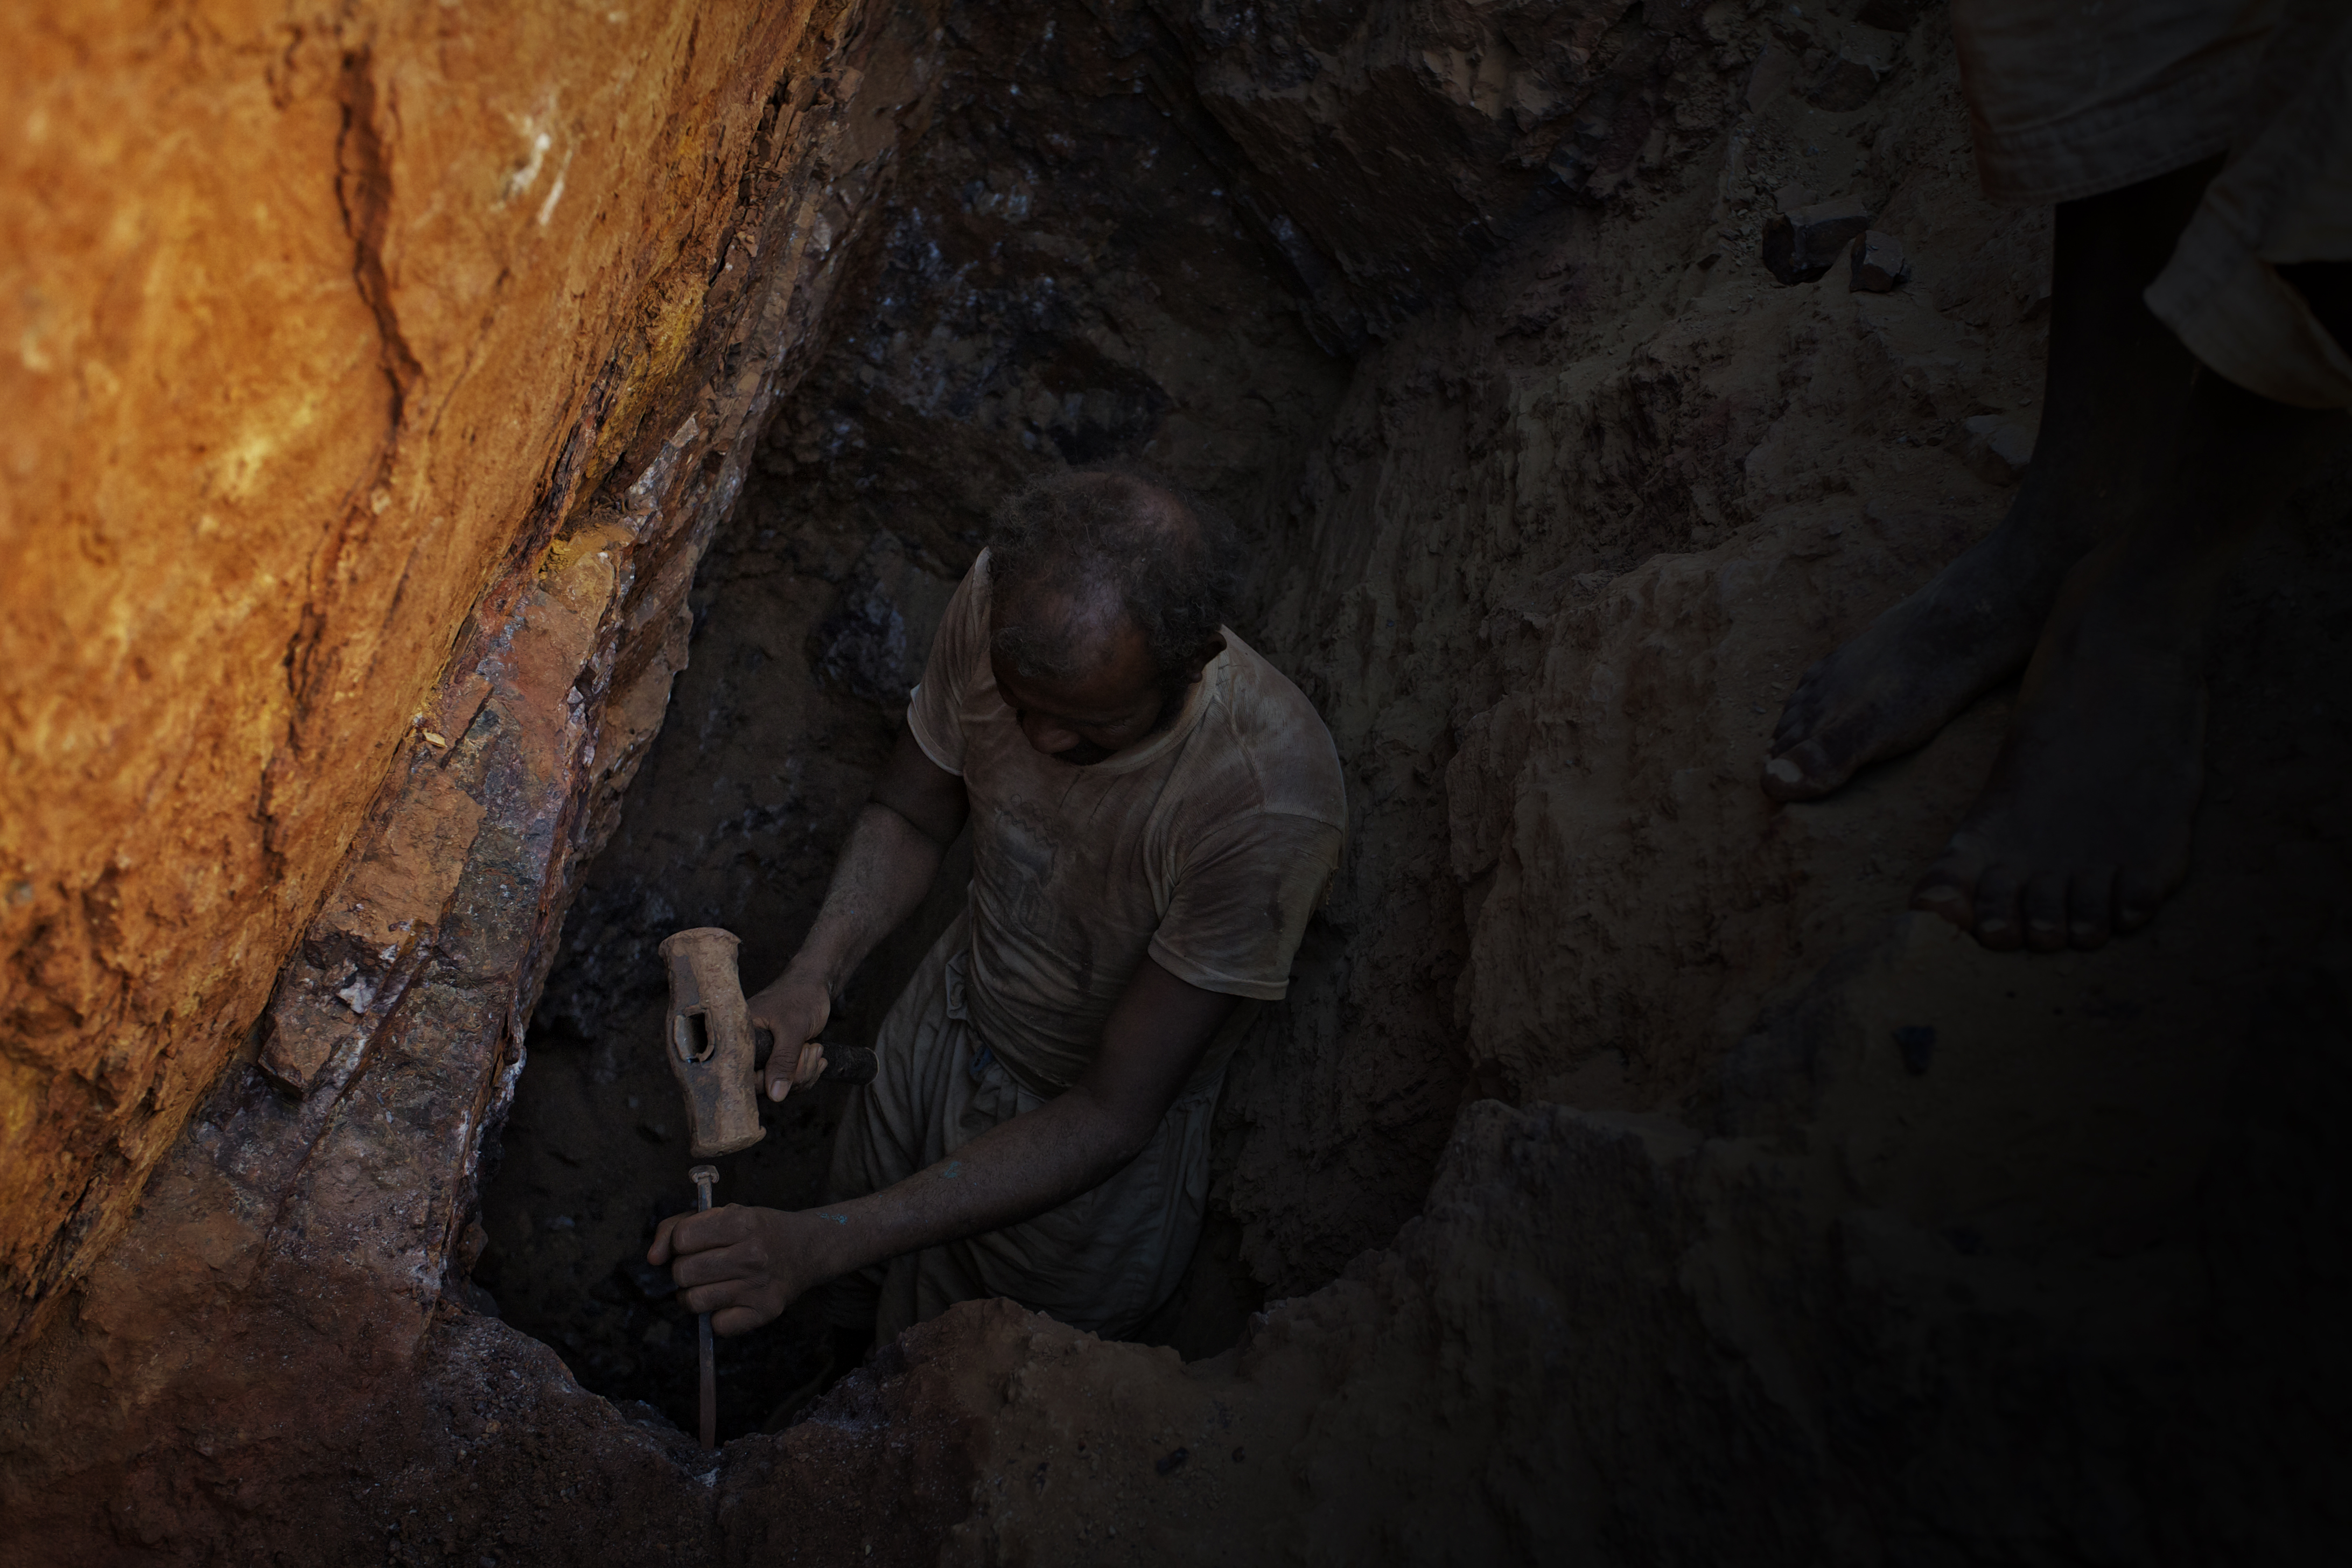 Gold Mining in Africa